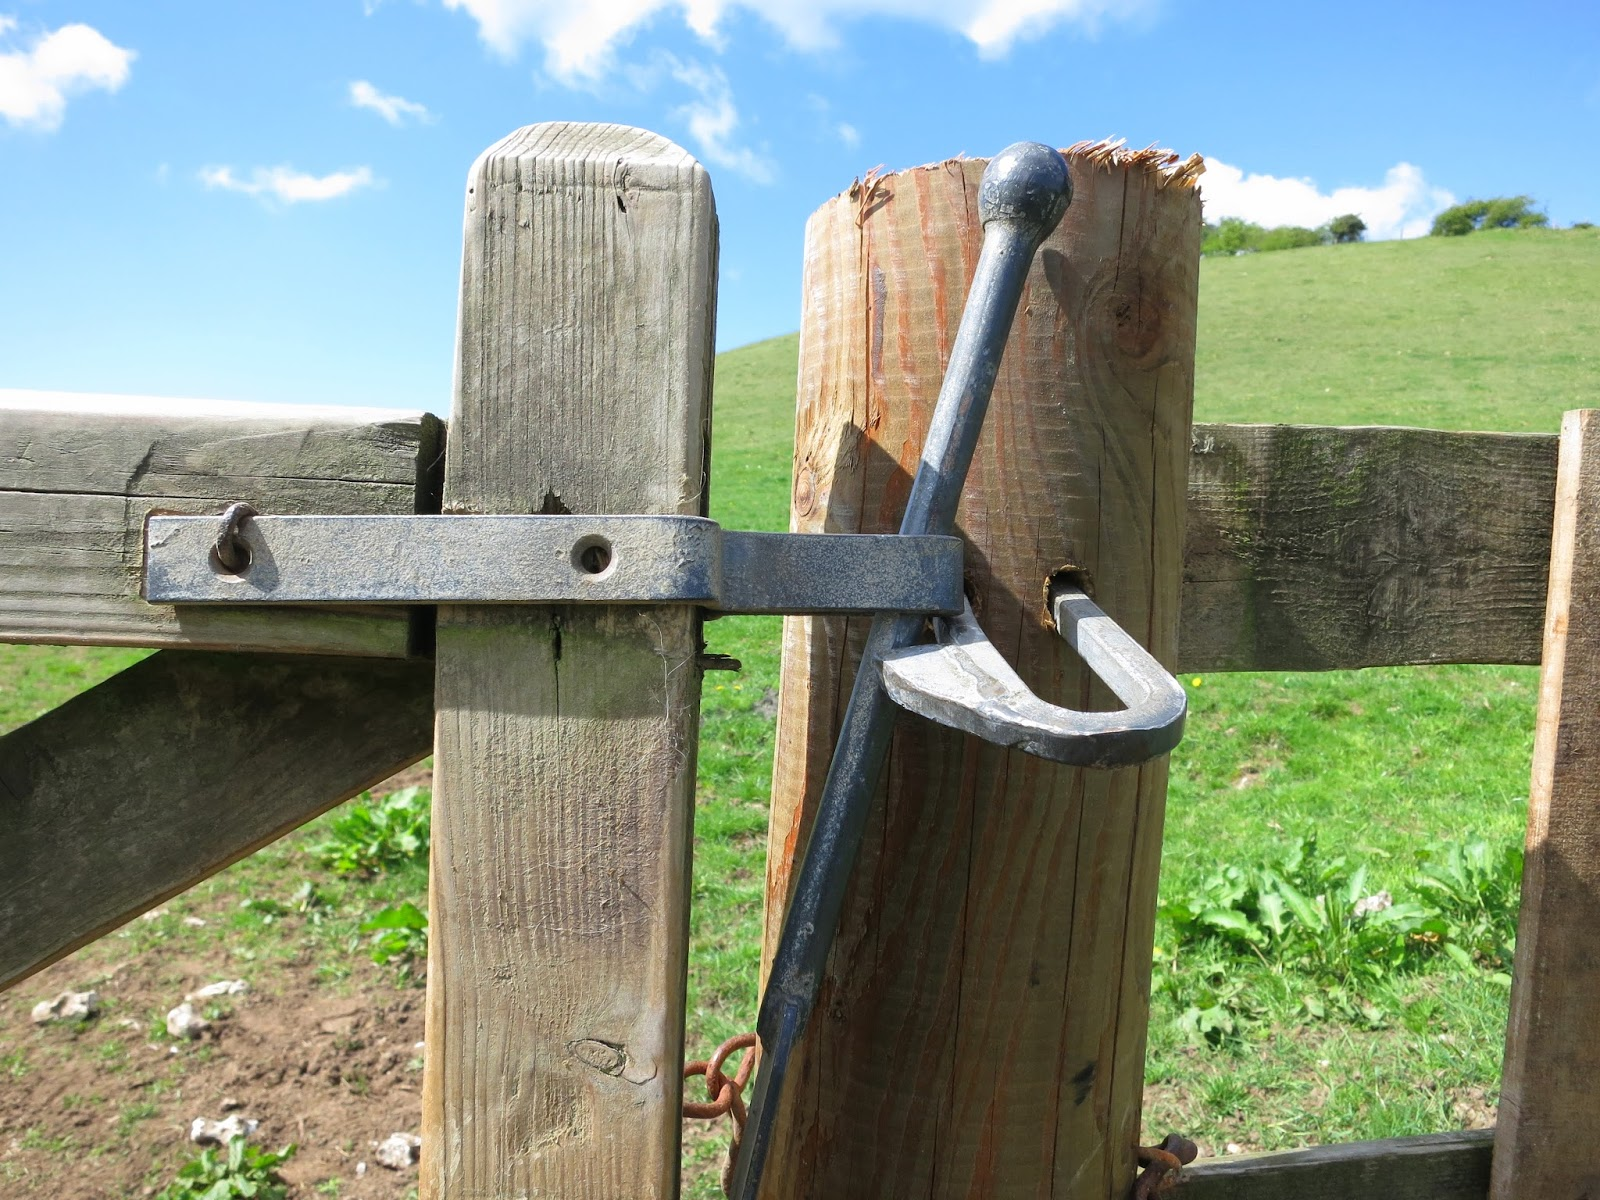 Wooden field gate with metal opening bar and link chain.